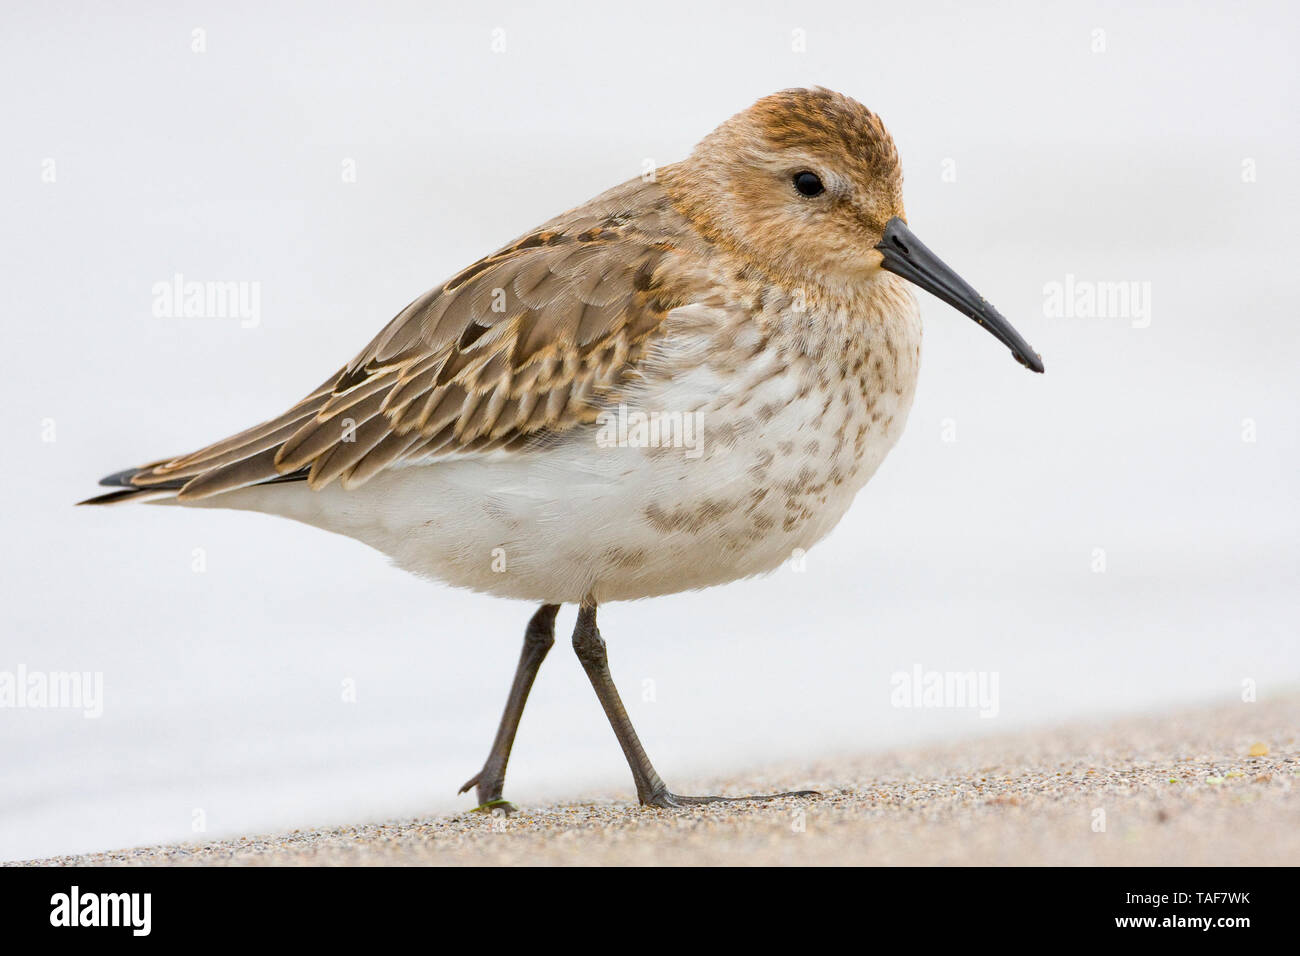 Dunlin (Calidris alpina), first winter individual standing on the shore, Campania, Italy Stock Photo